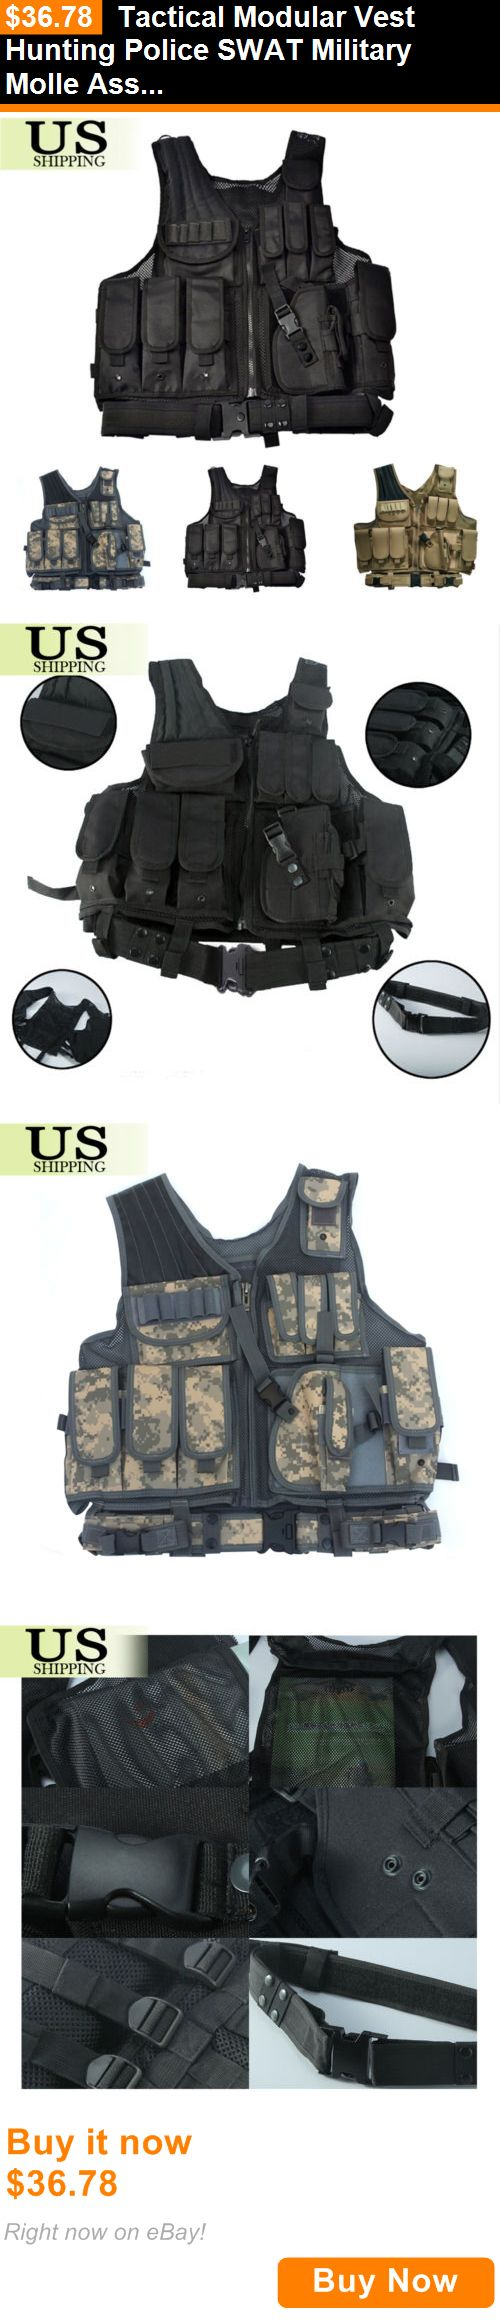 Chest Rigs and Tactical Vests 177891: Tactical Modular Vest Hunting Police Swat Military Molle Assault Belt And Holster BUY IT NOW ONLY: $36.78